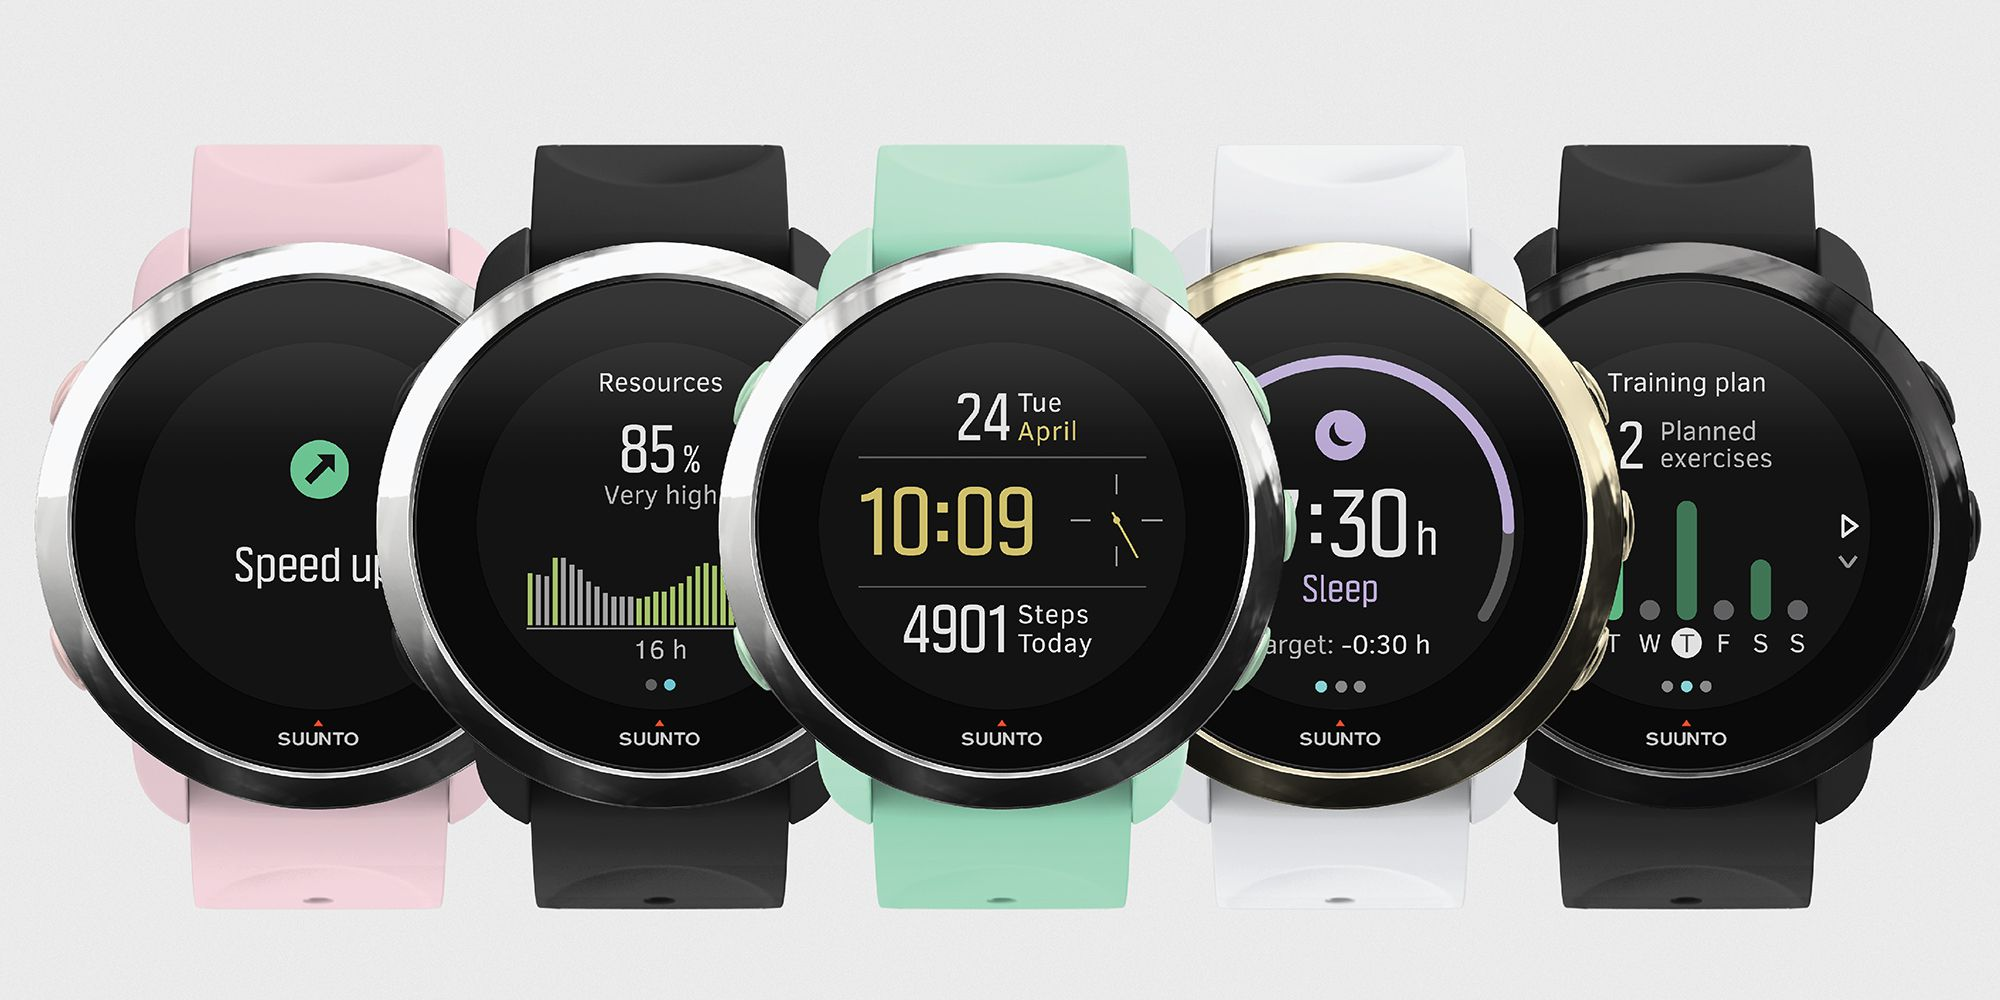 Suunto 3 Fitness Watch hottest 2019 products